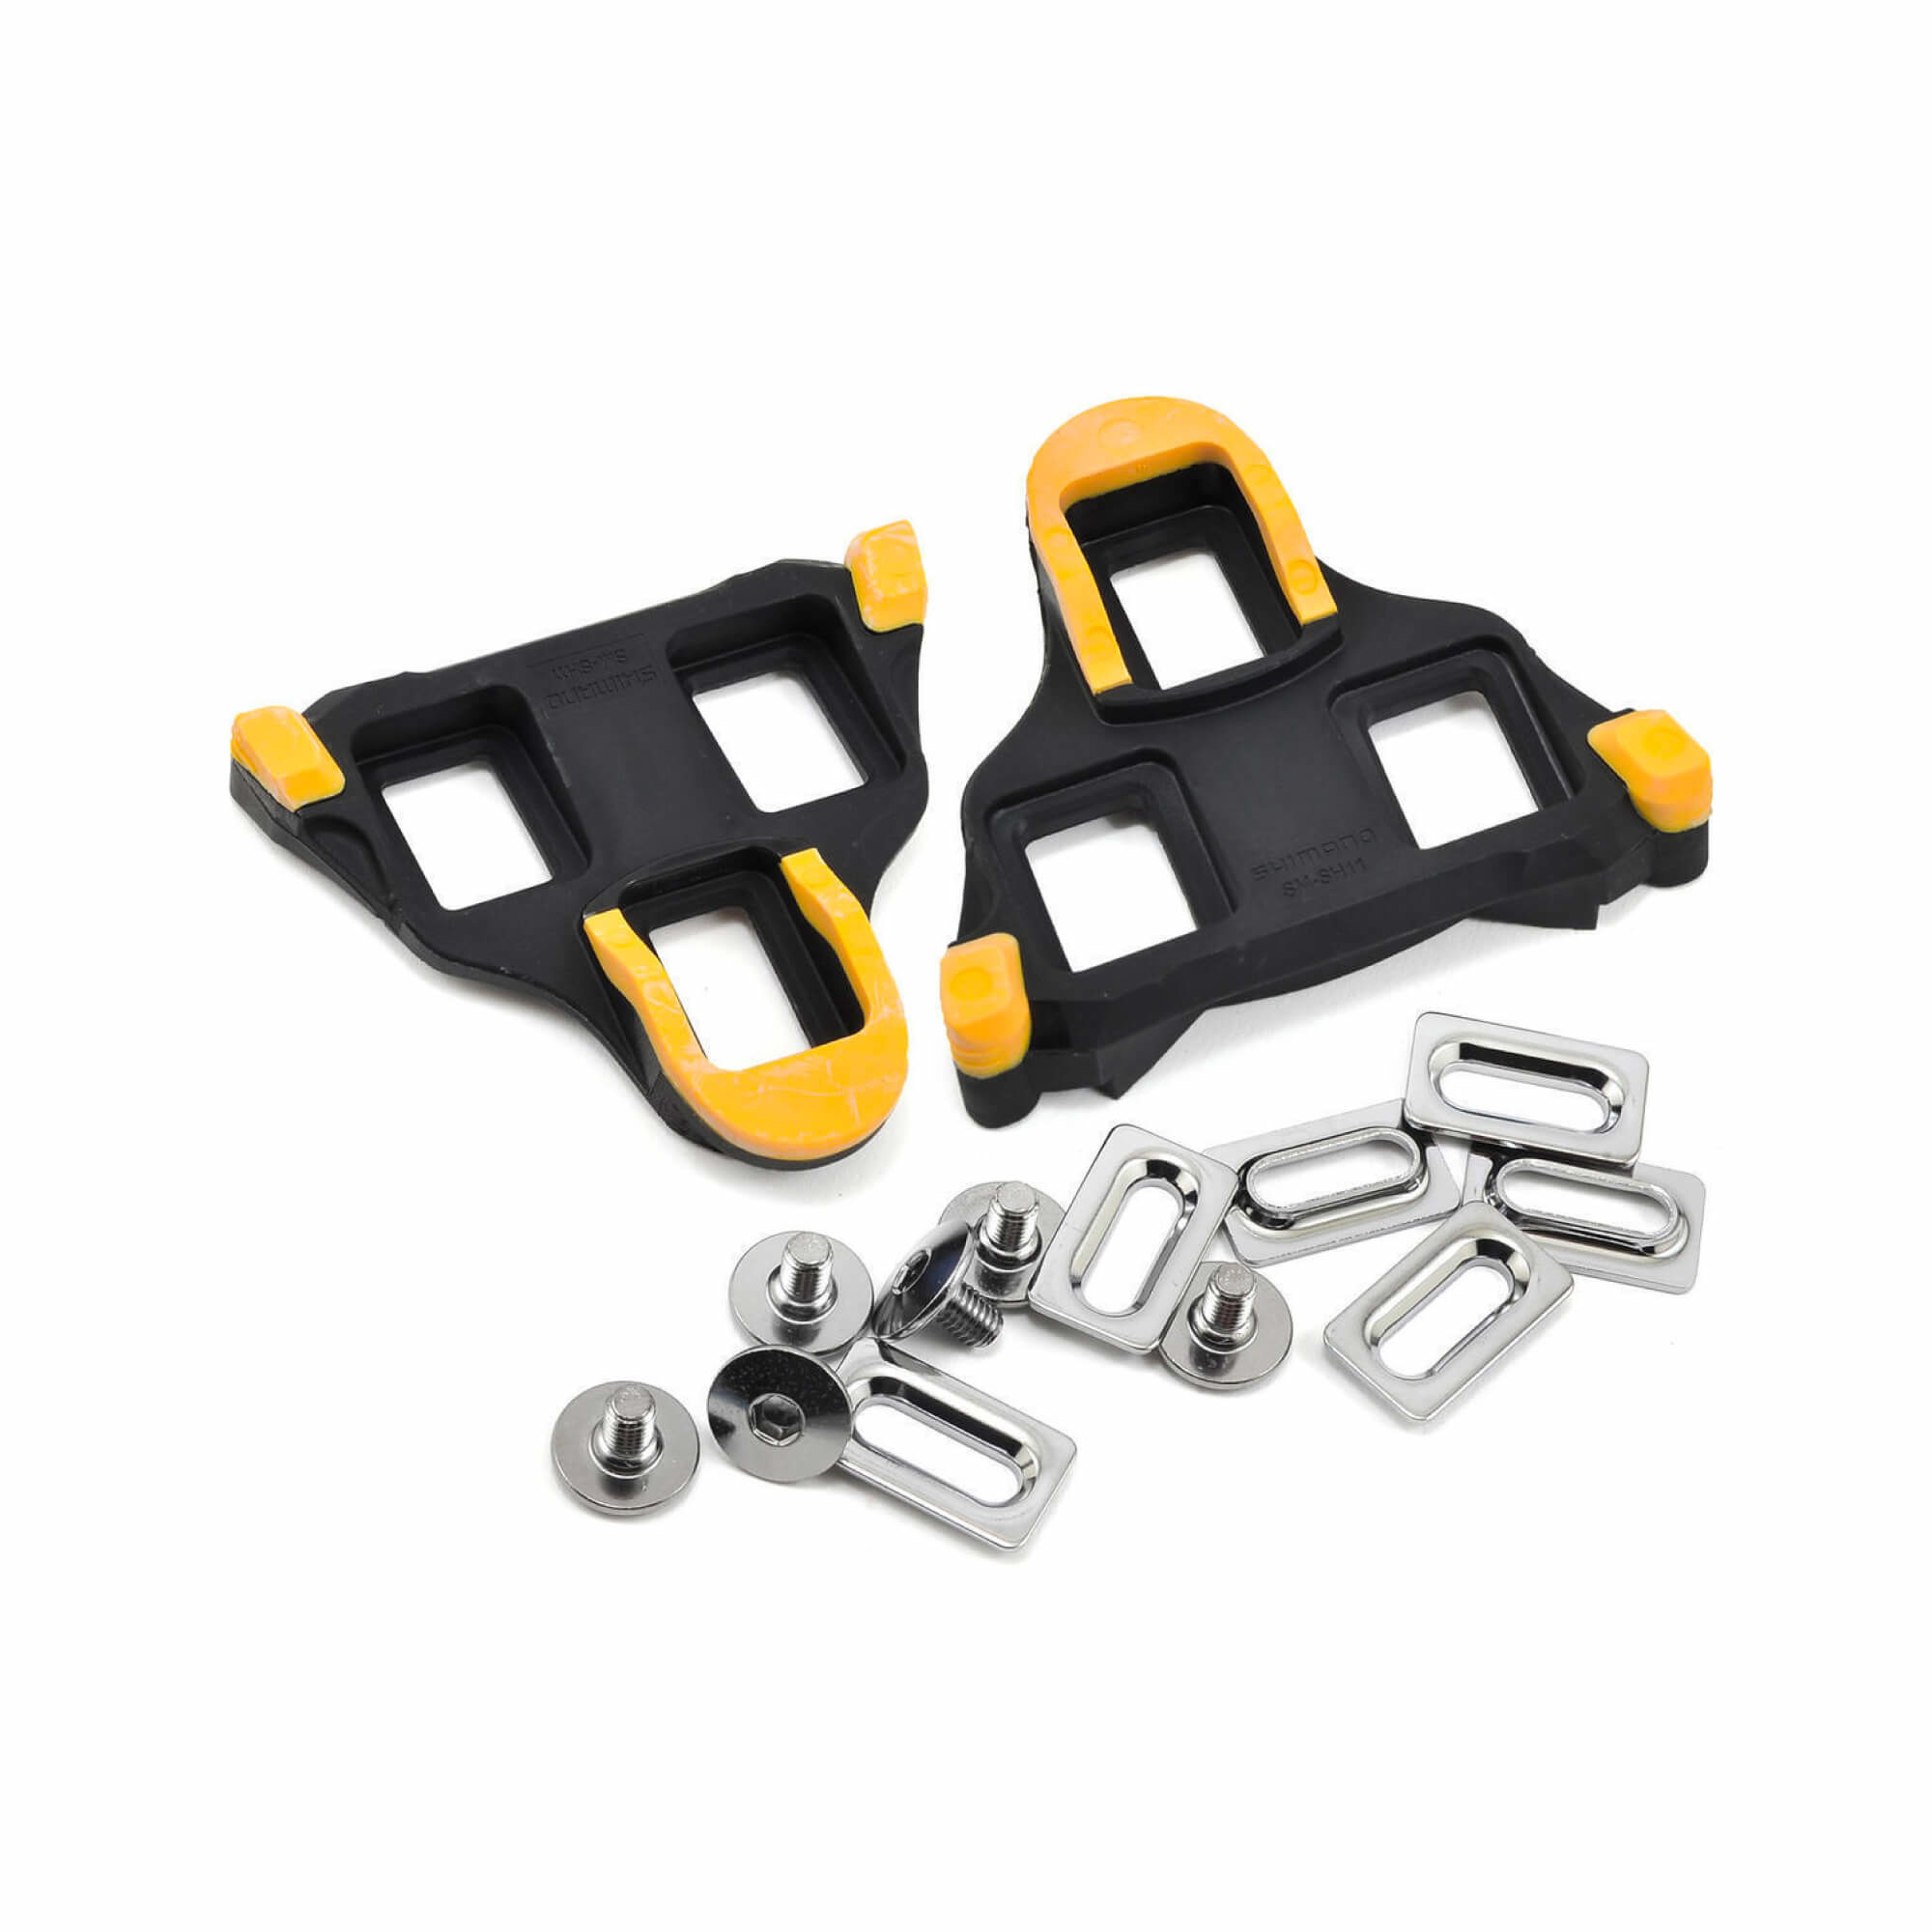 SM-SH11 Spd-Sl Cleat Set Floating Mode - Yellow-1